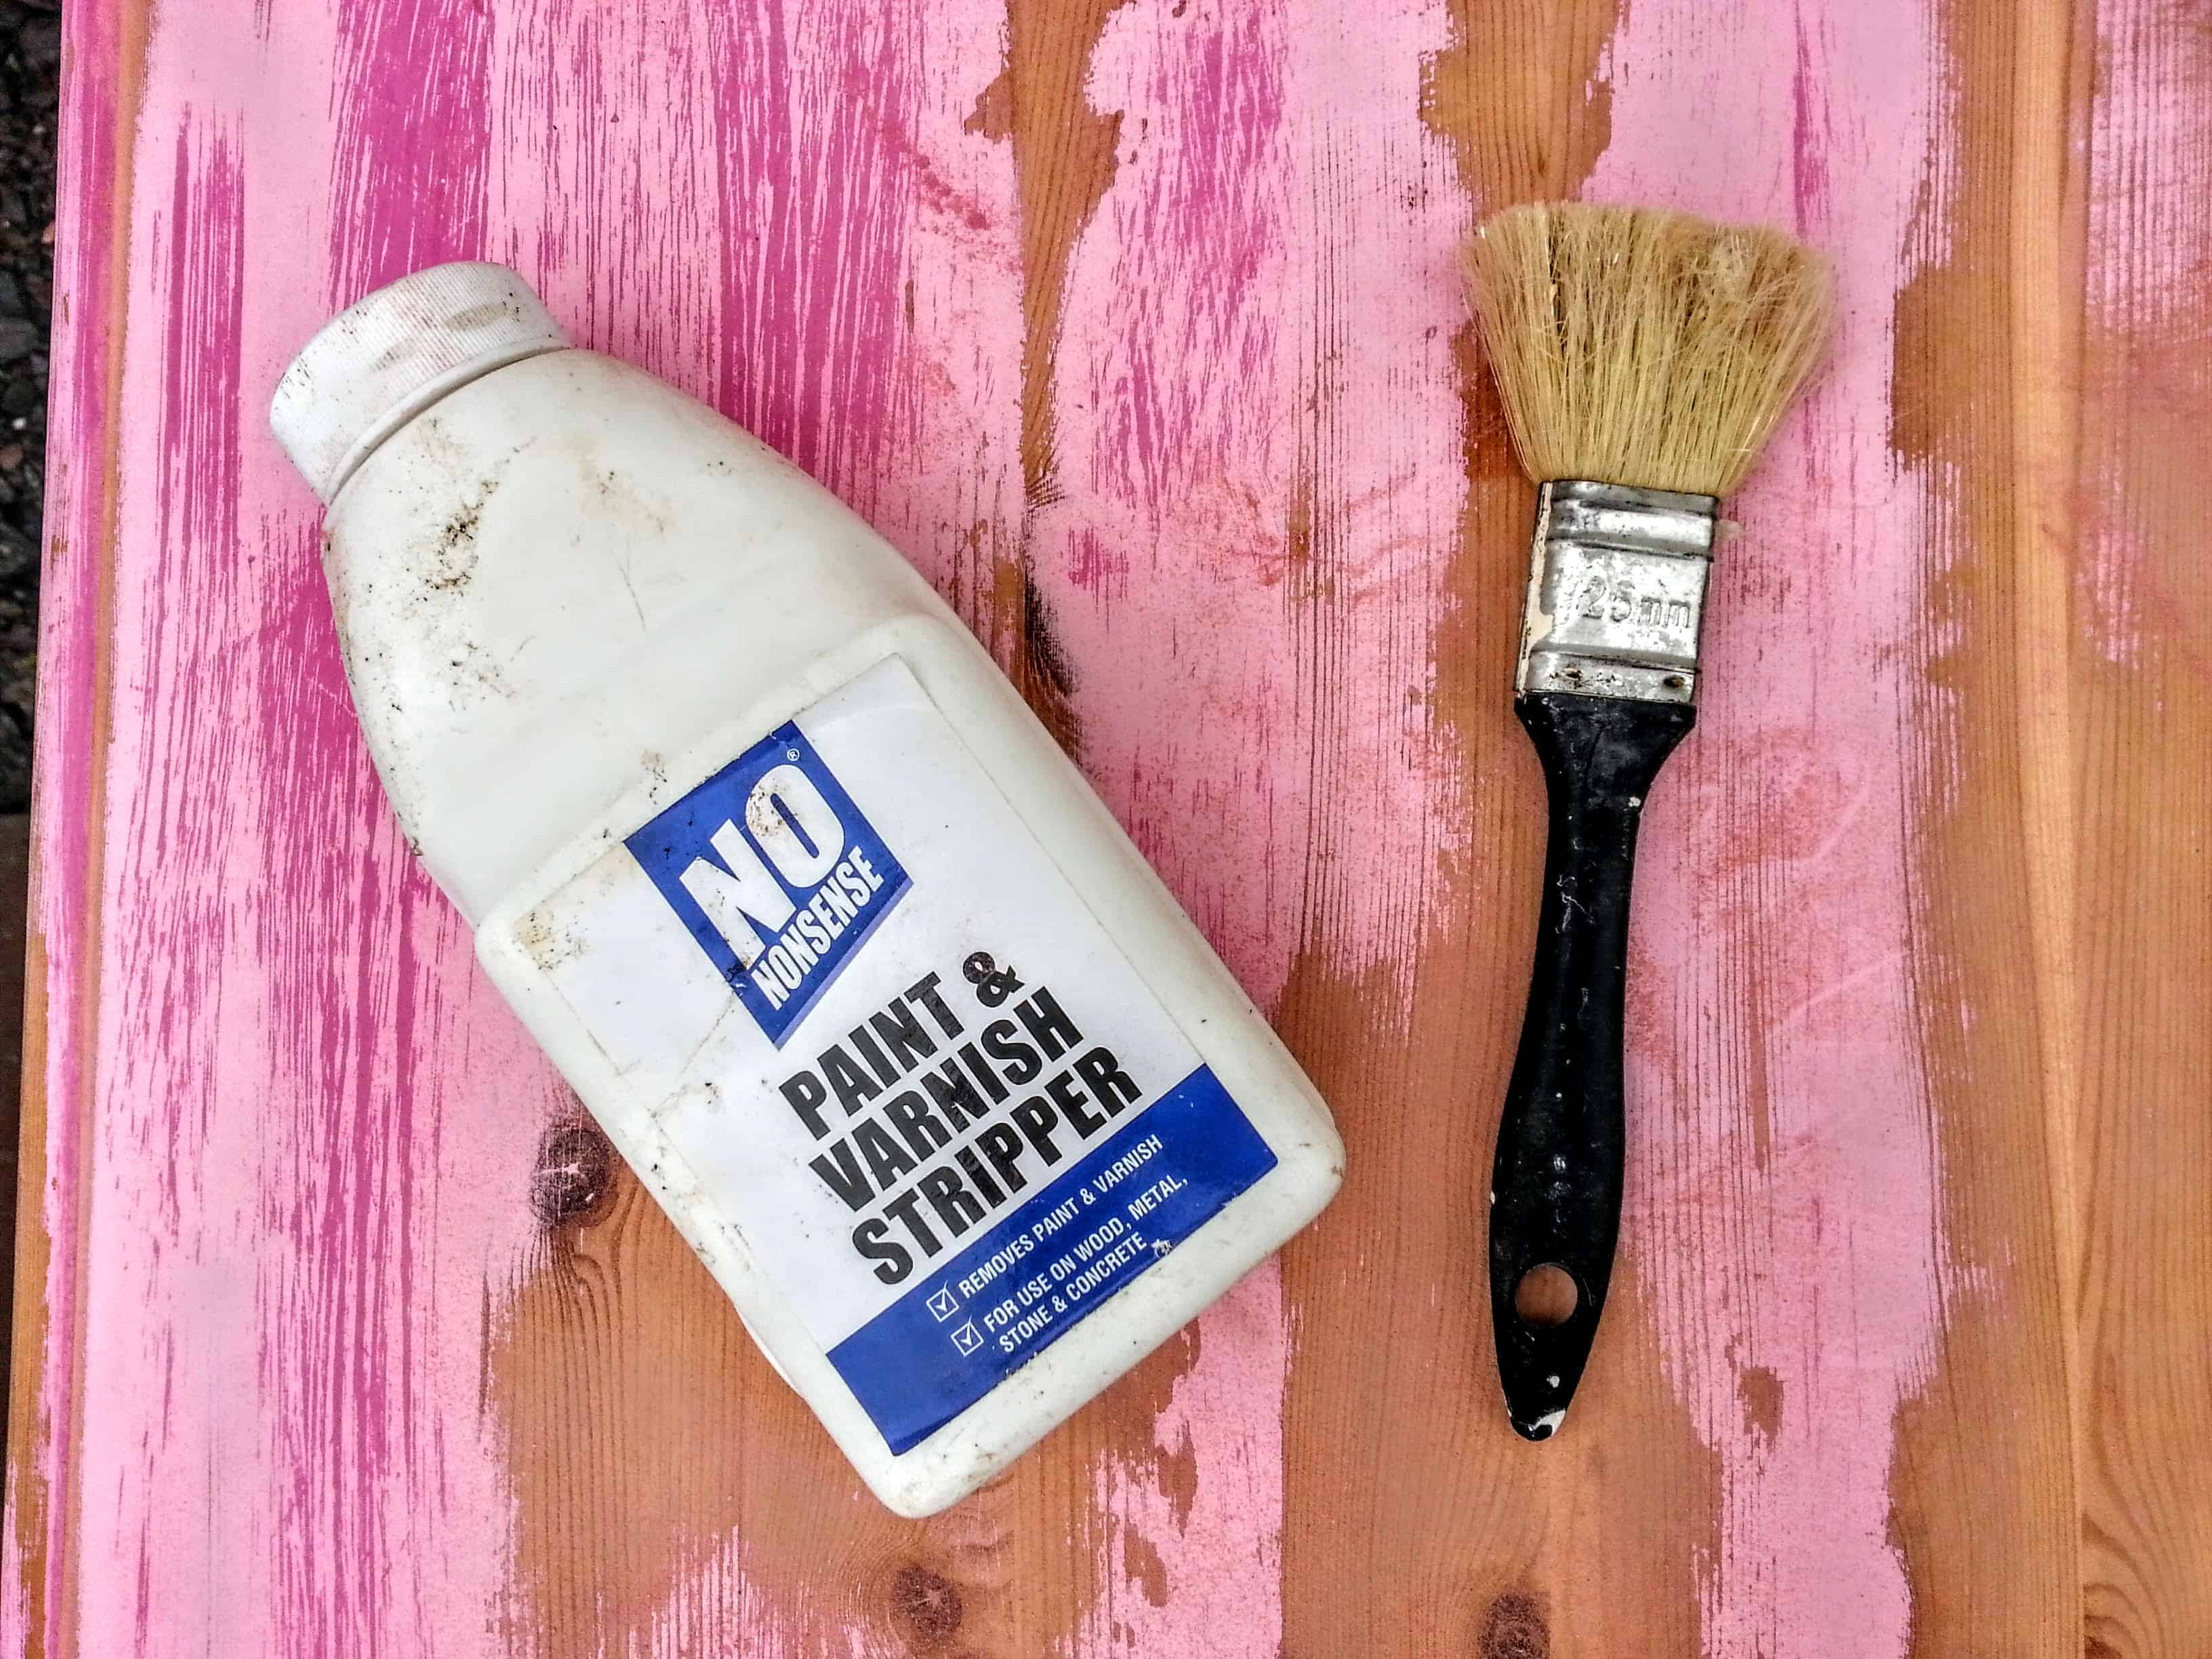 Screwfix's Paint & Varnish Stripper – First Impressions